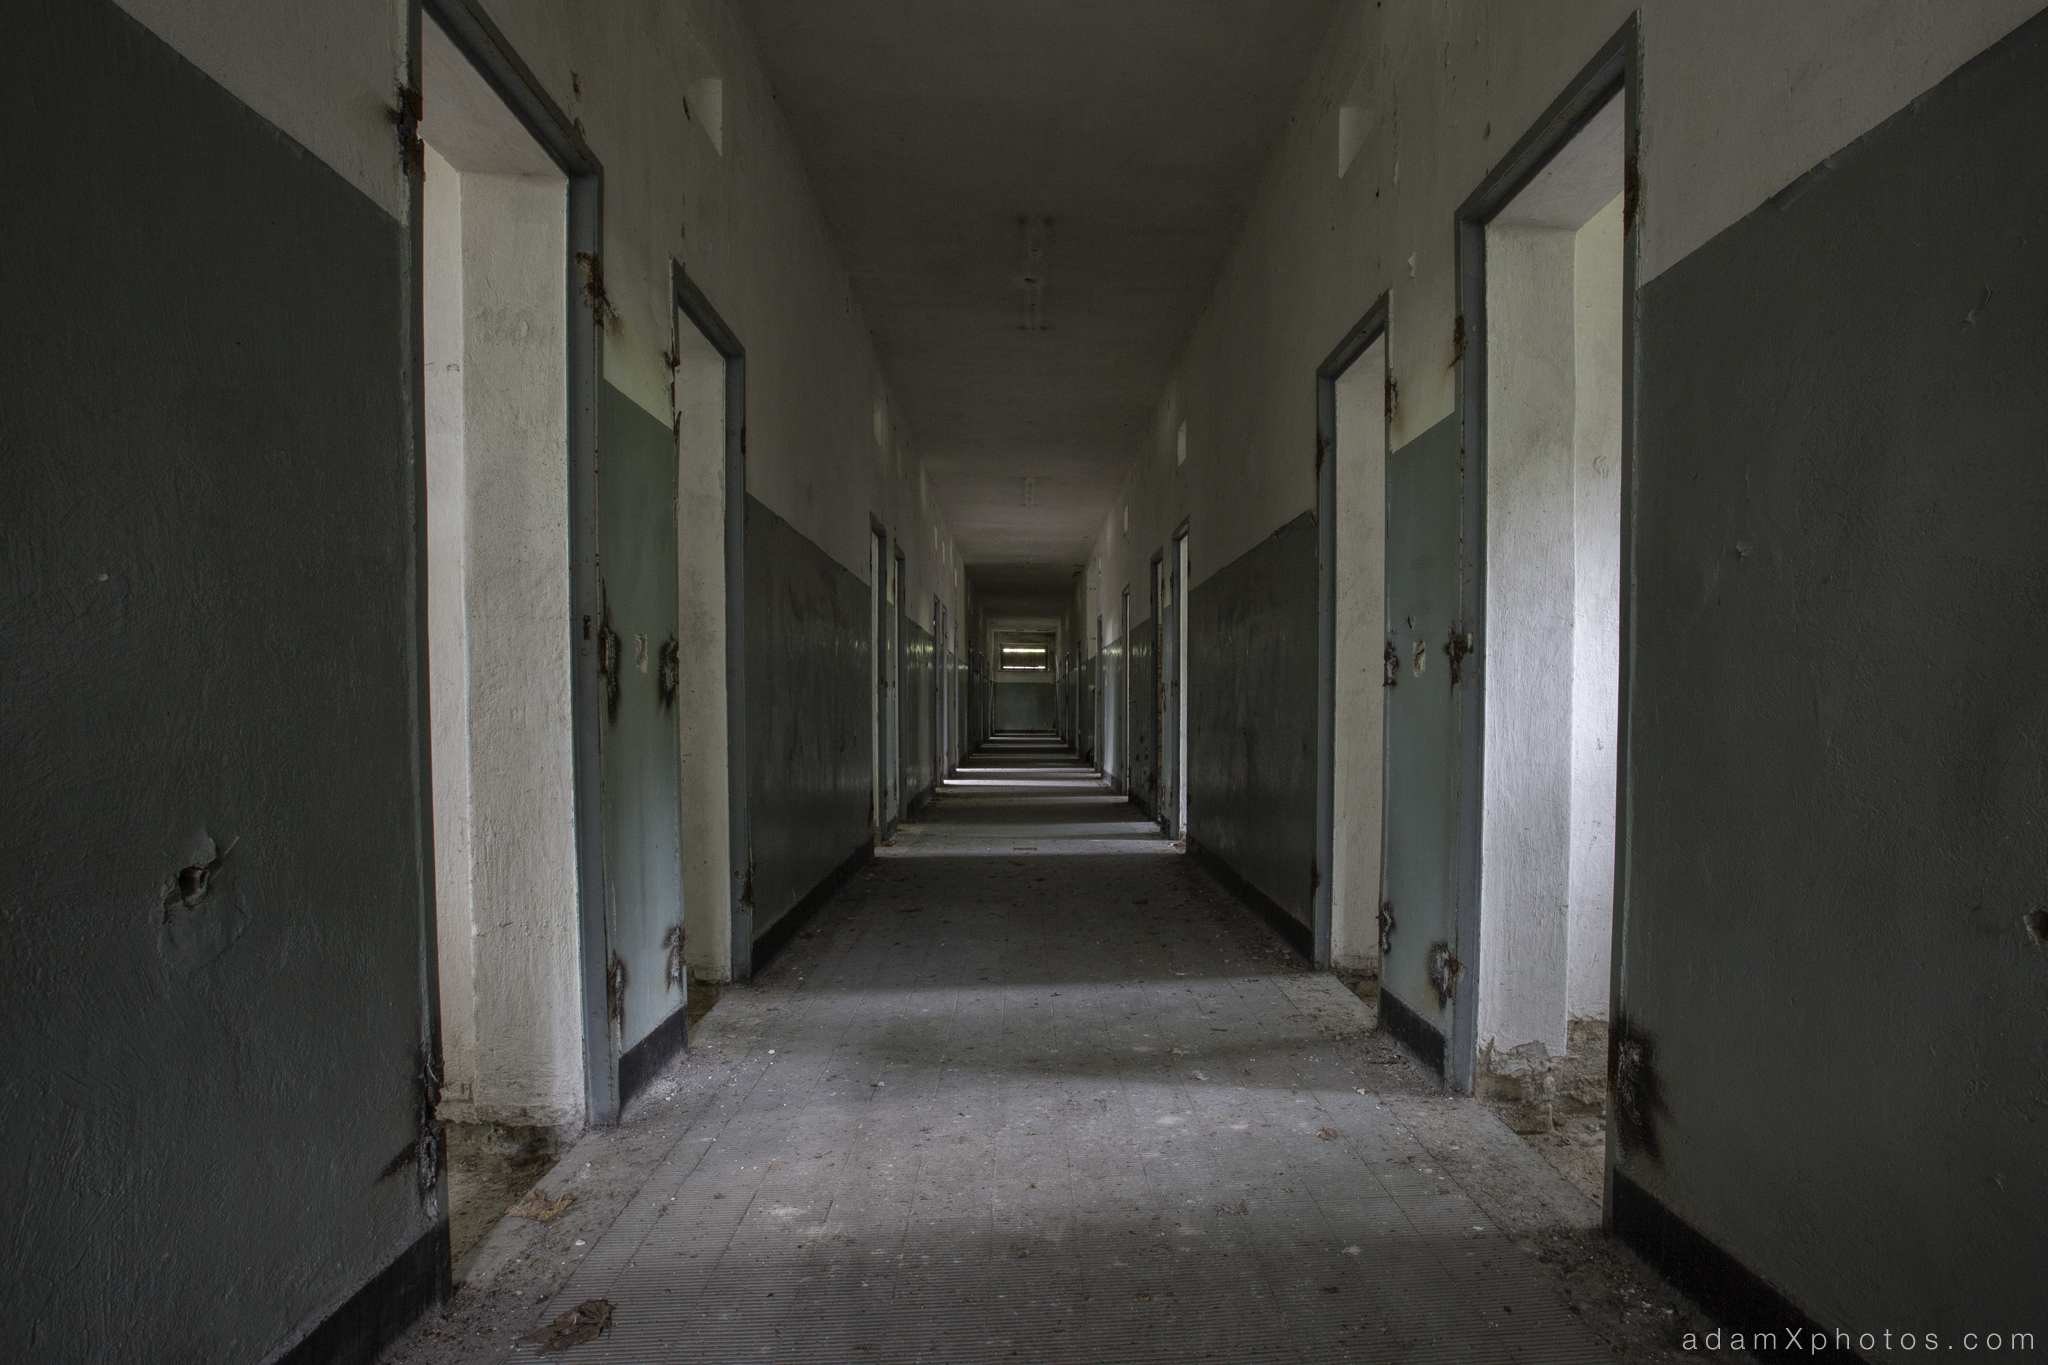 Adam X Urbex Urban Exploration Abandoned Germany Wunsdorf barracks prison corridor